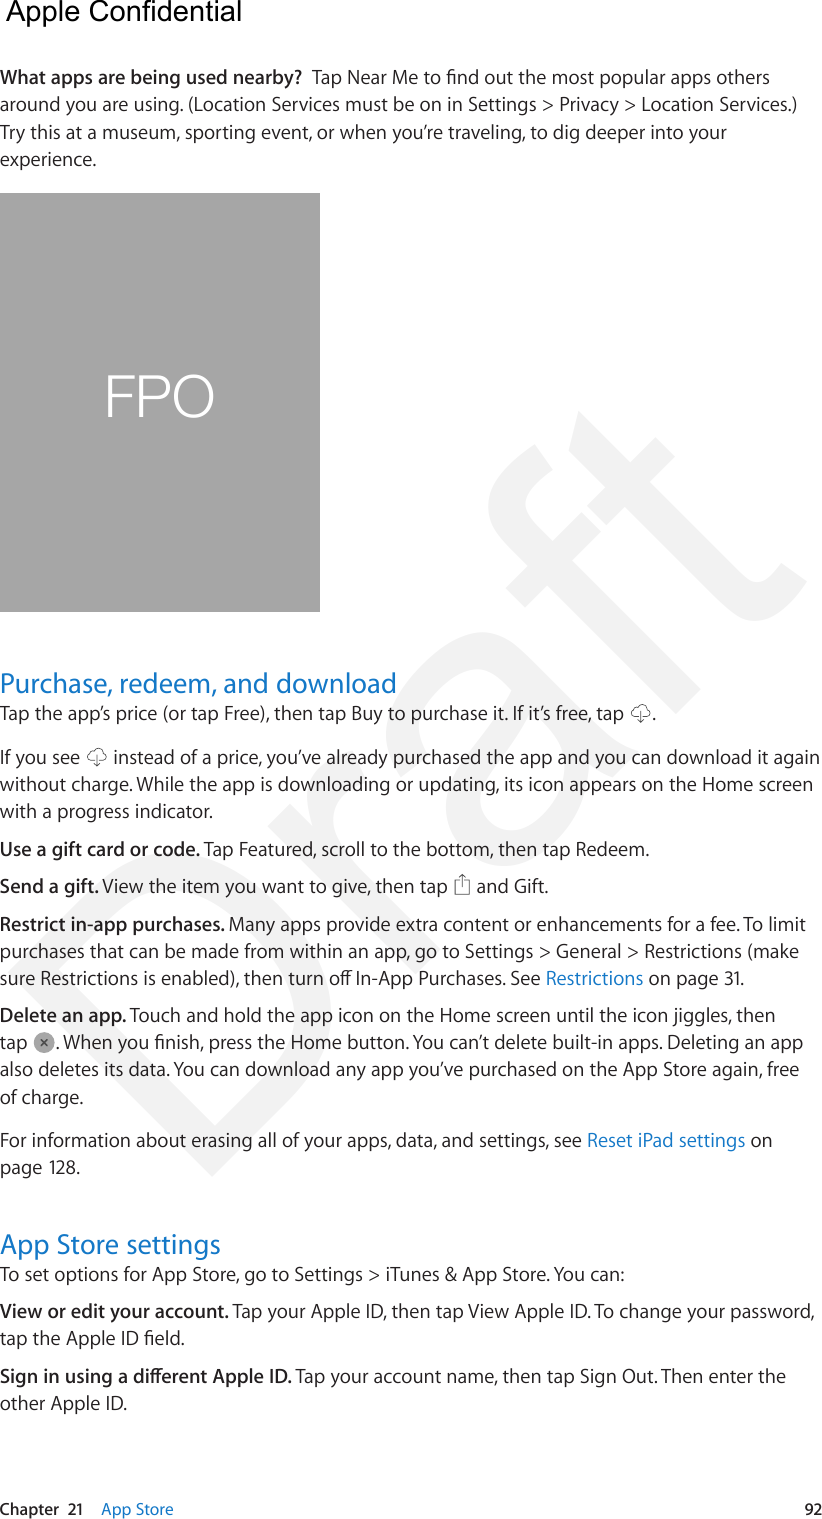 apple ipad user guide free download